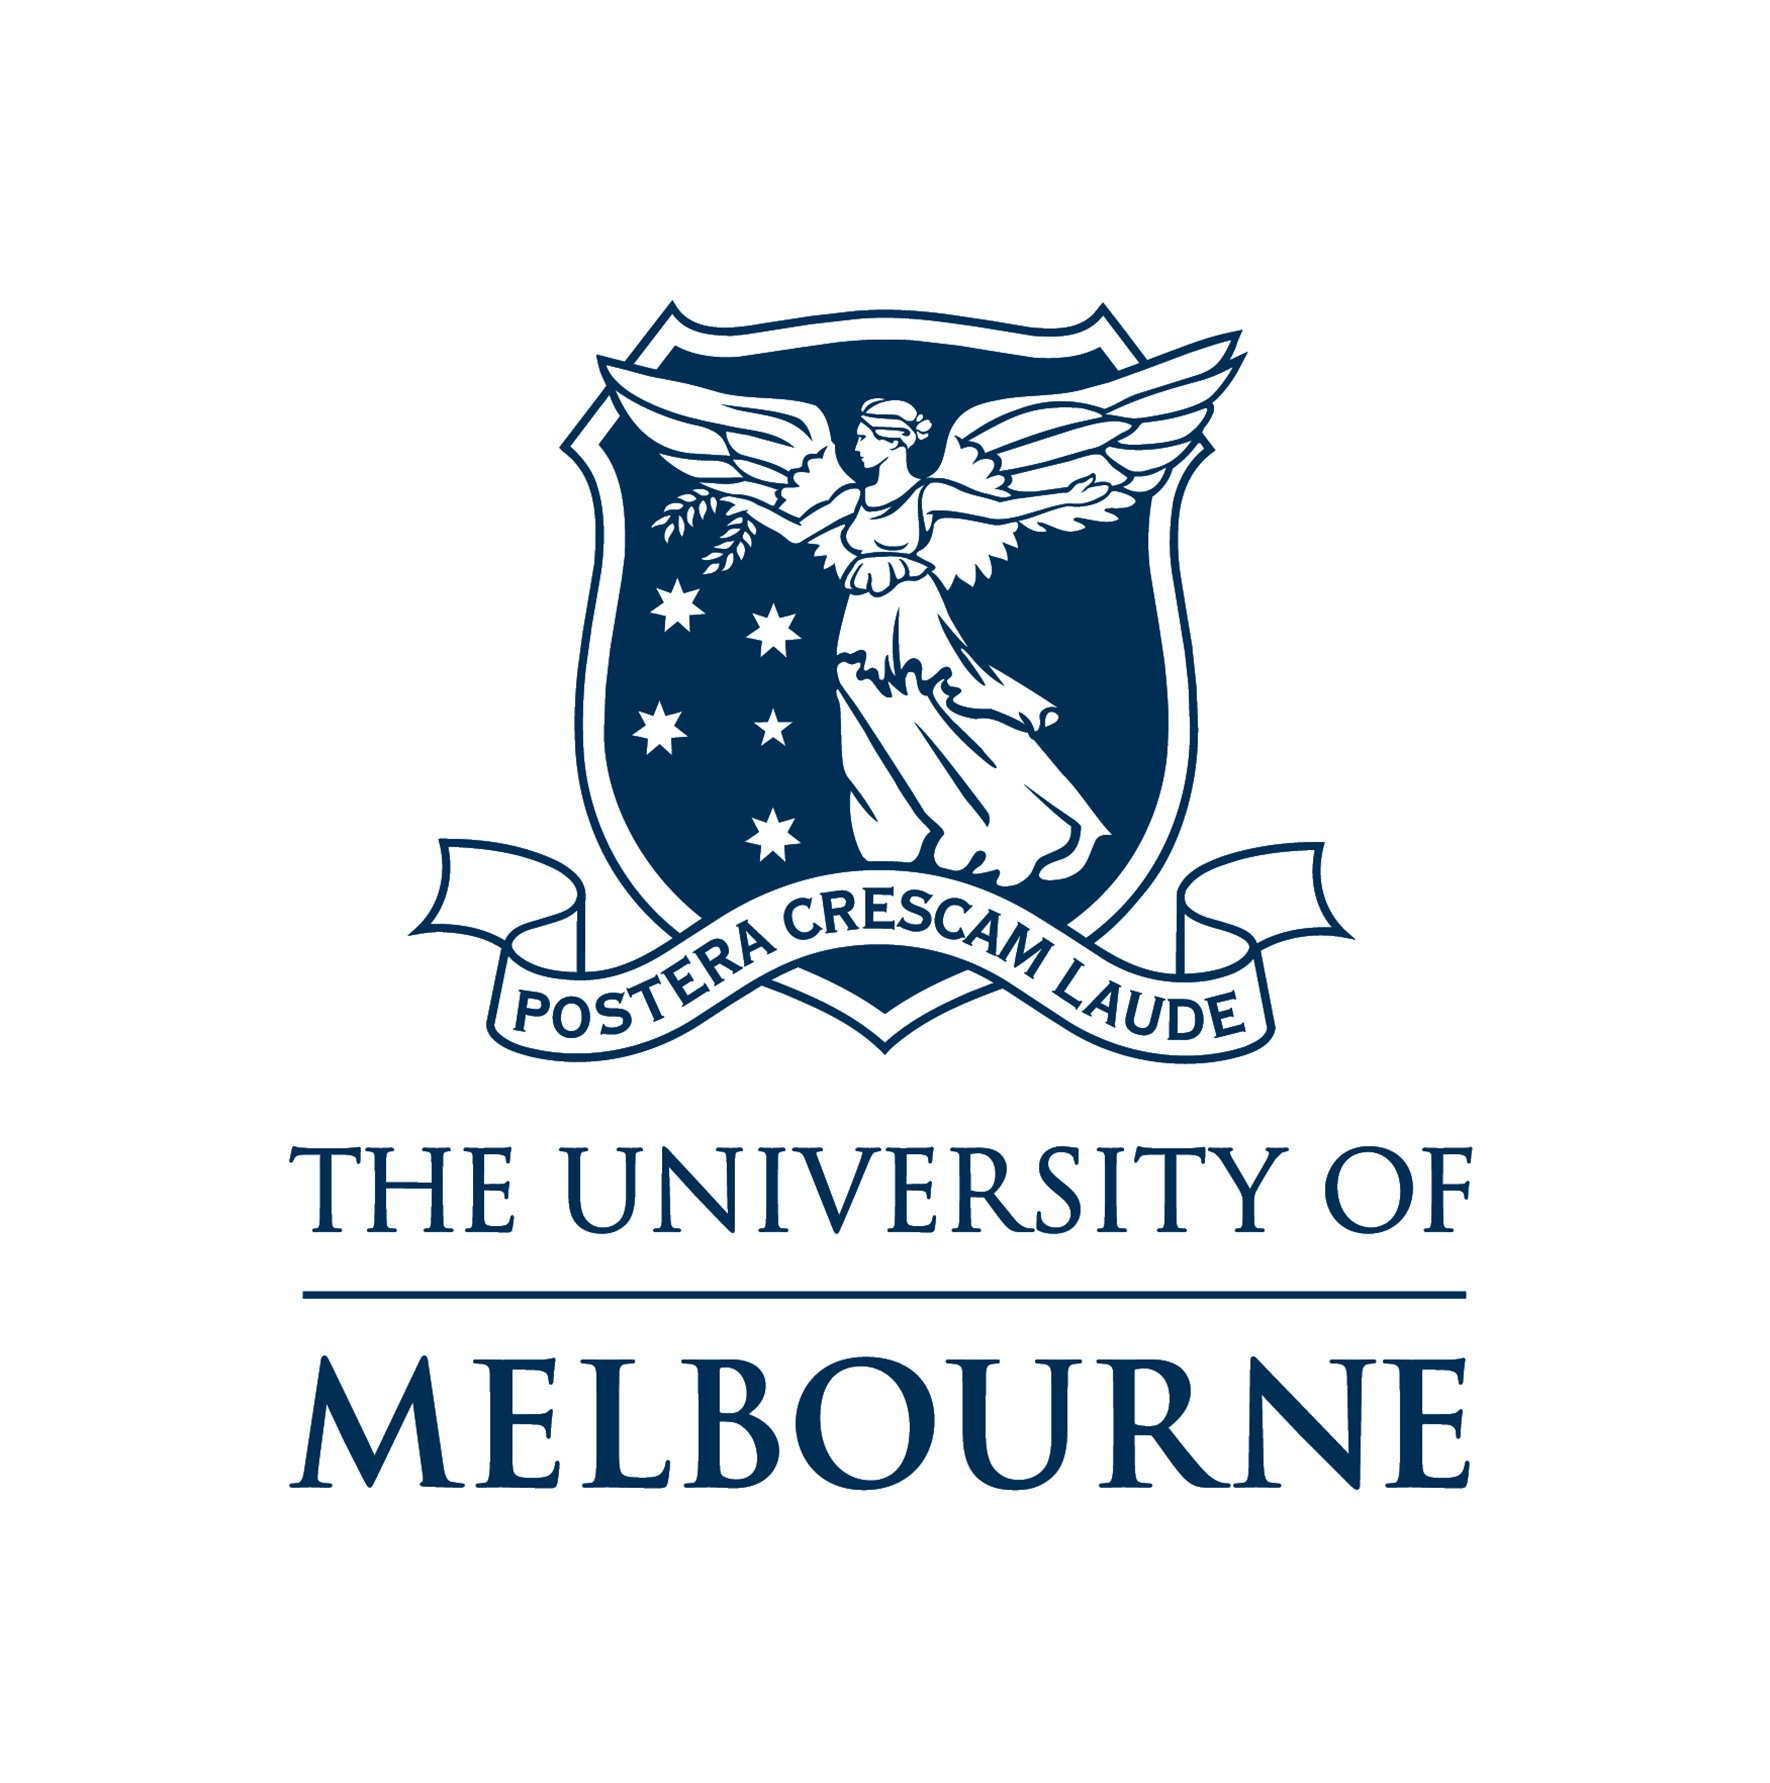 The University of Melbourne - UoM